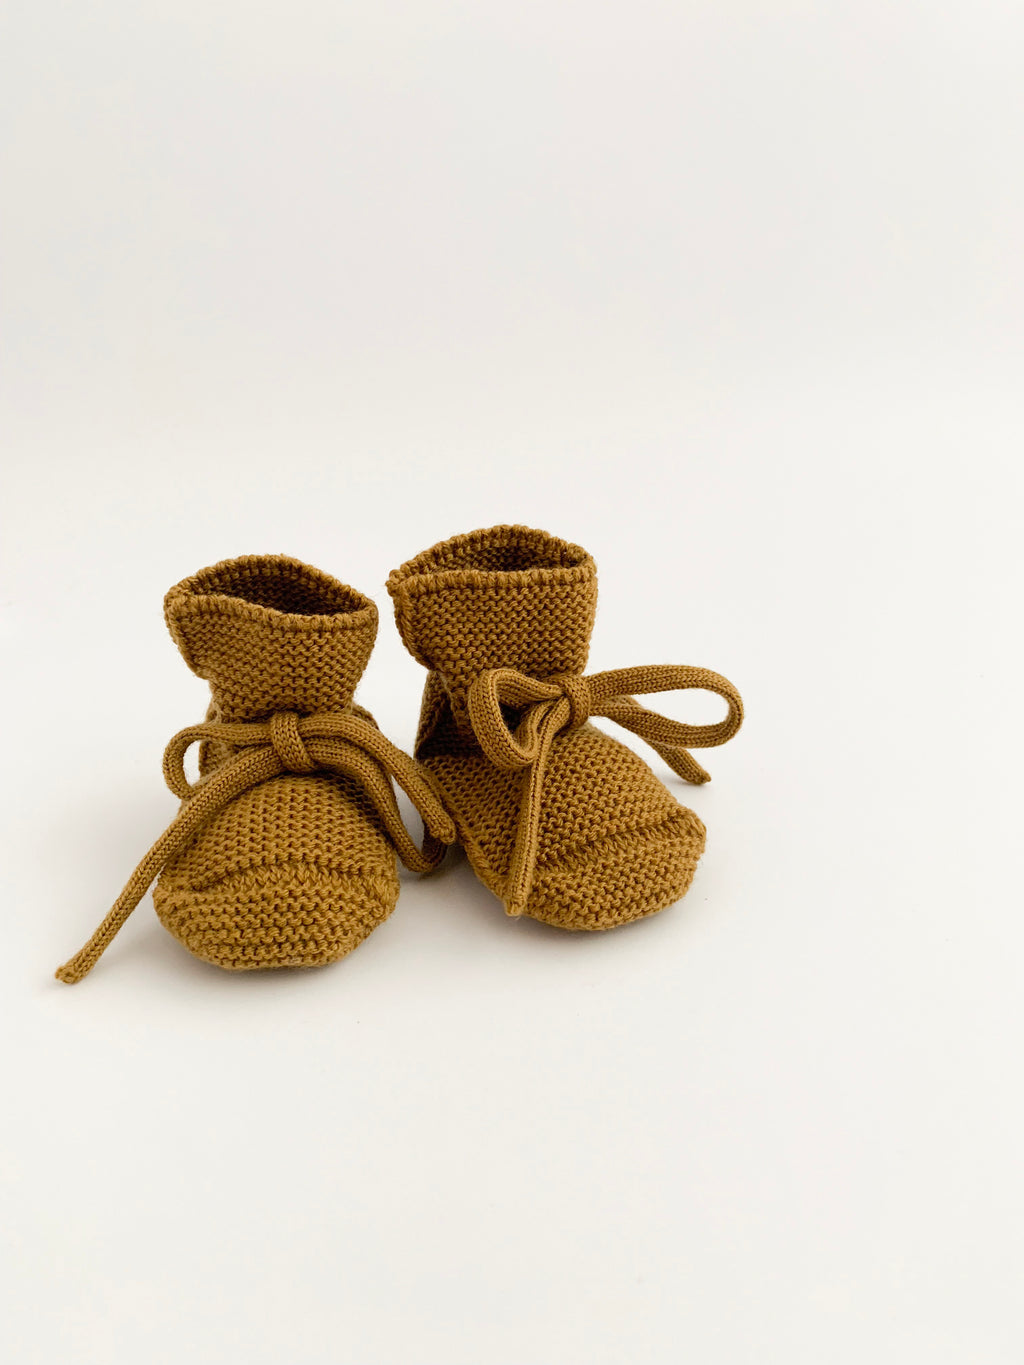 Handmade 'Booties' - The Seed